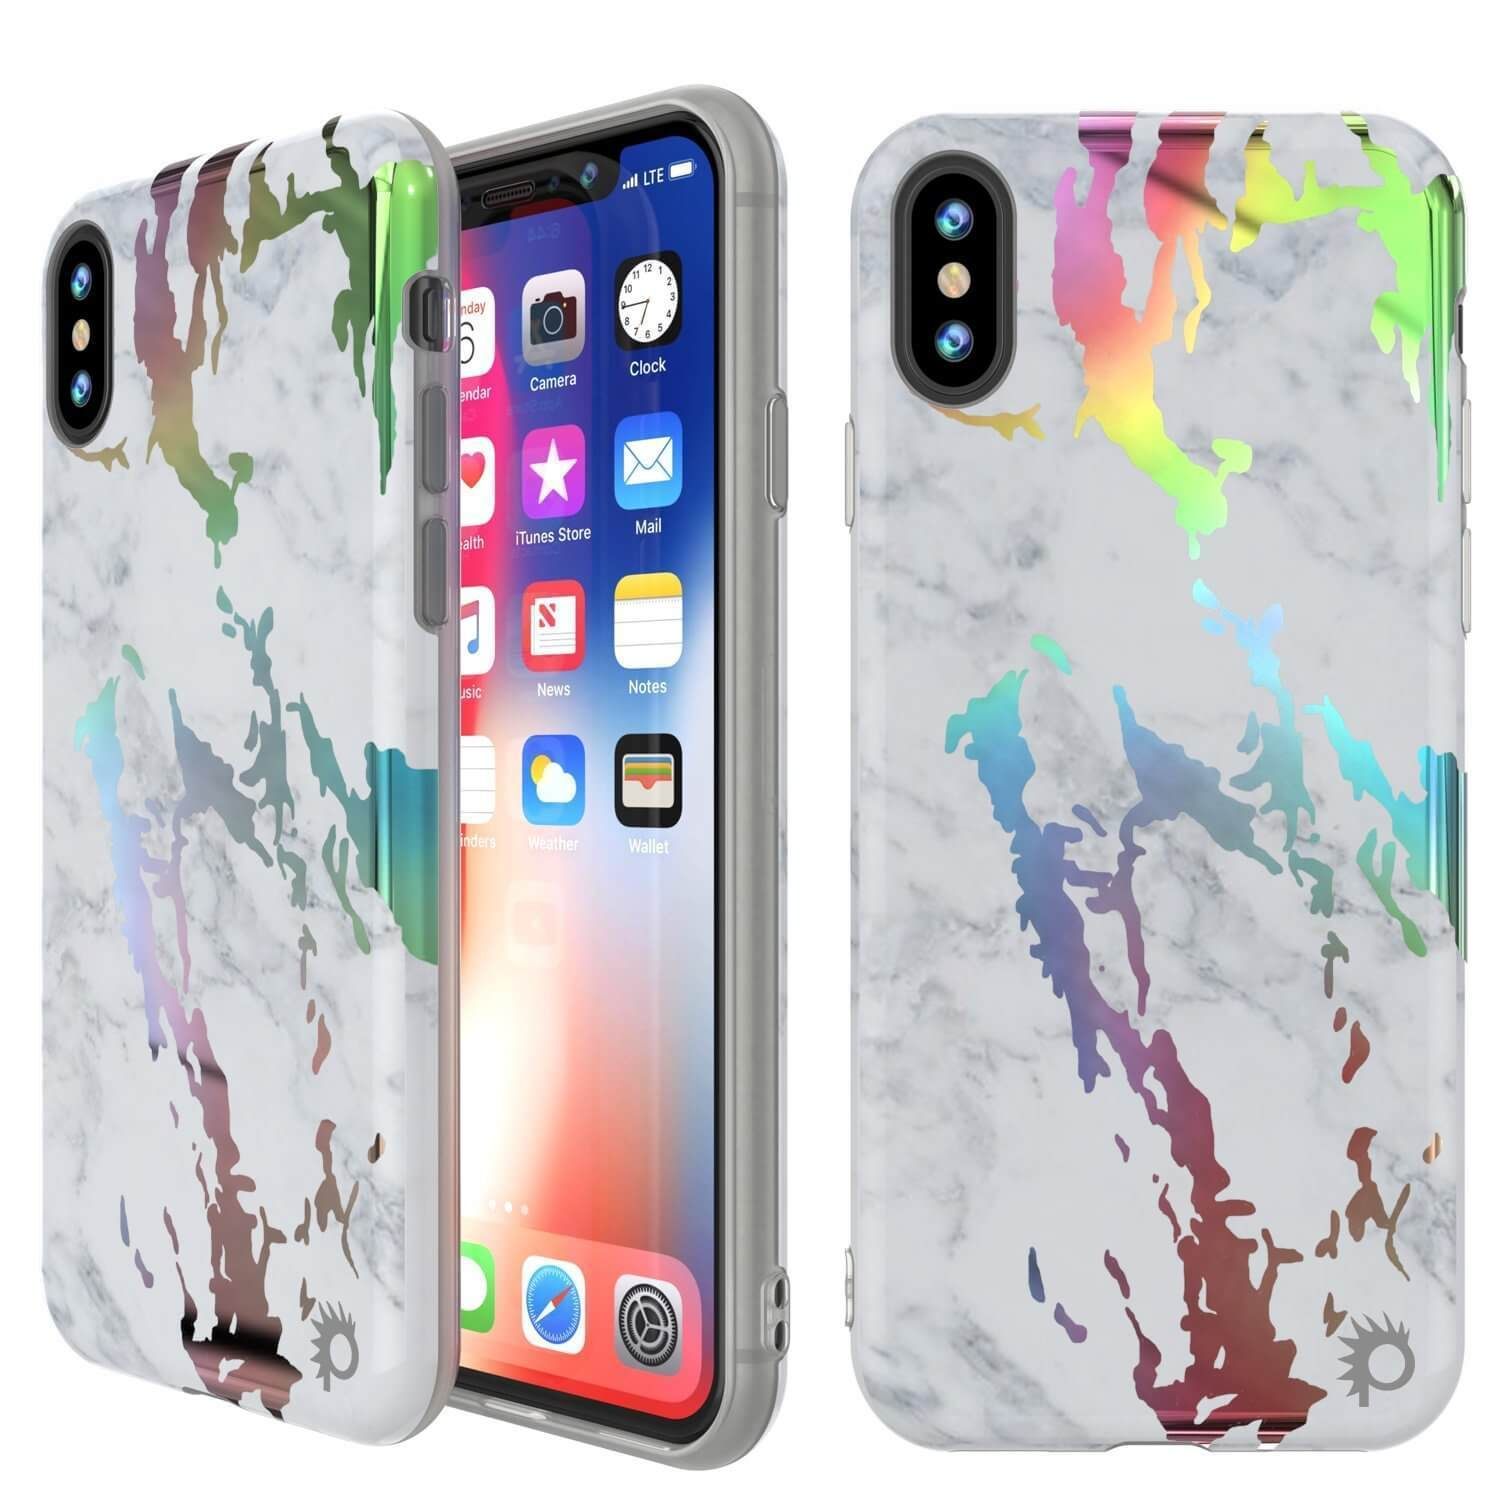 Punkcase iPhone XS Max Marble Case, Protective Full Body Cover W/9H Tempered Glass Screen Protector (Blanco Marmo)